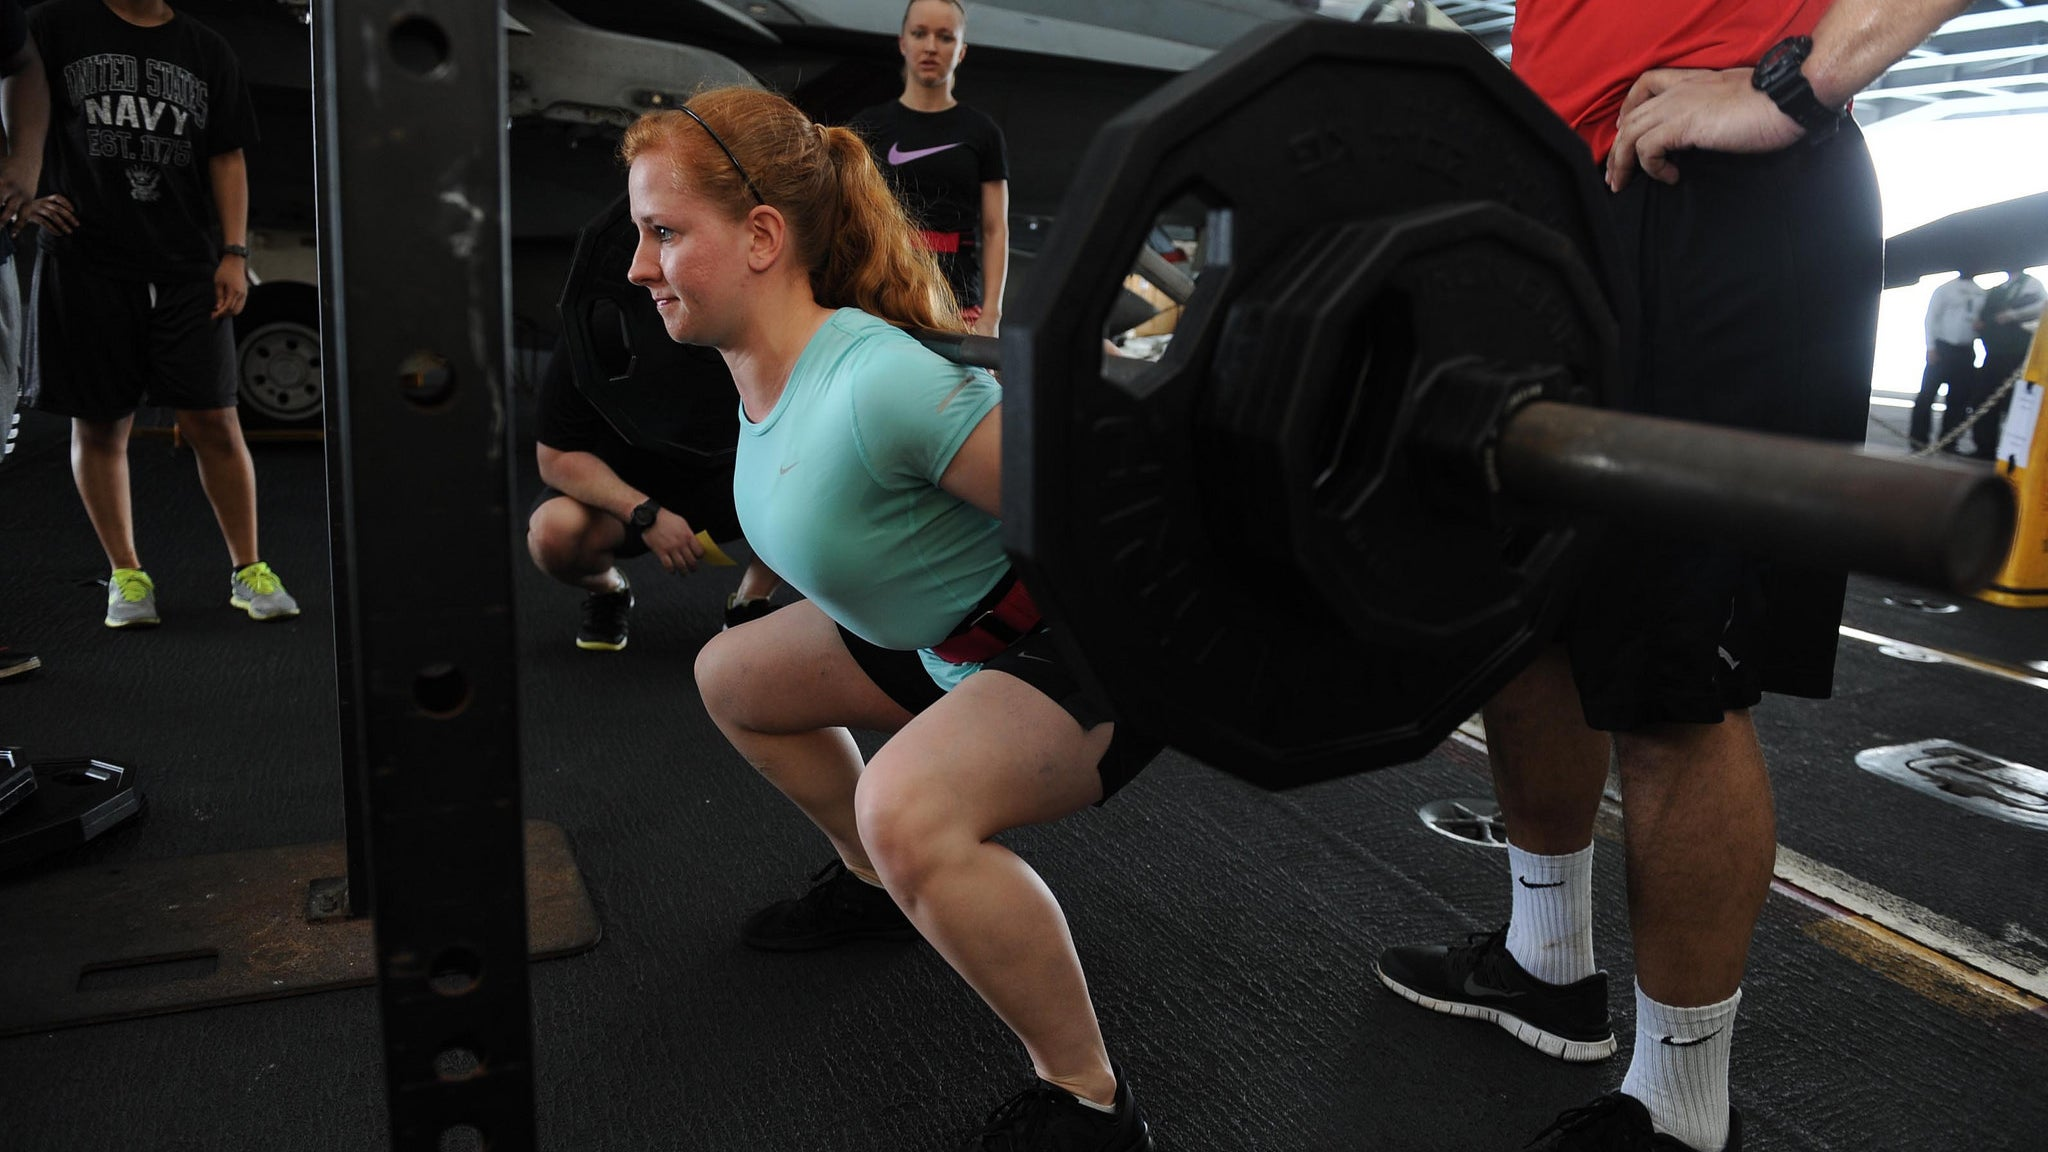 Starting Strength Is An Awesome Weight Training Program For Beginners